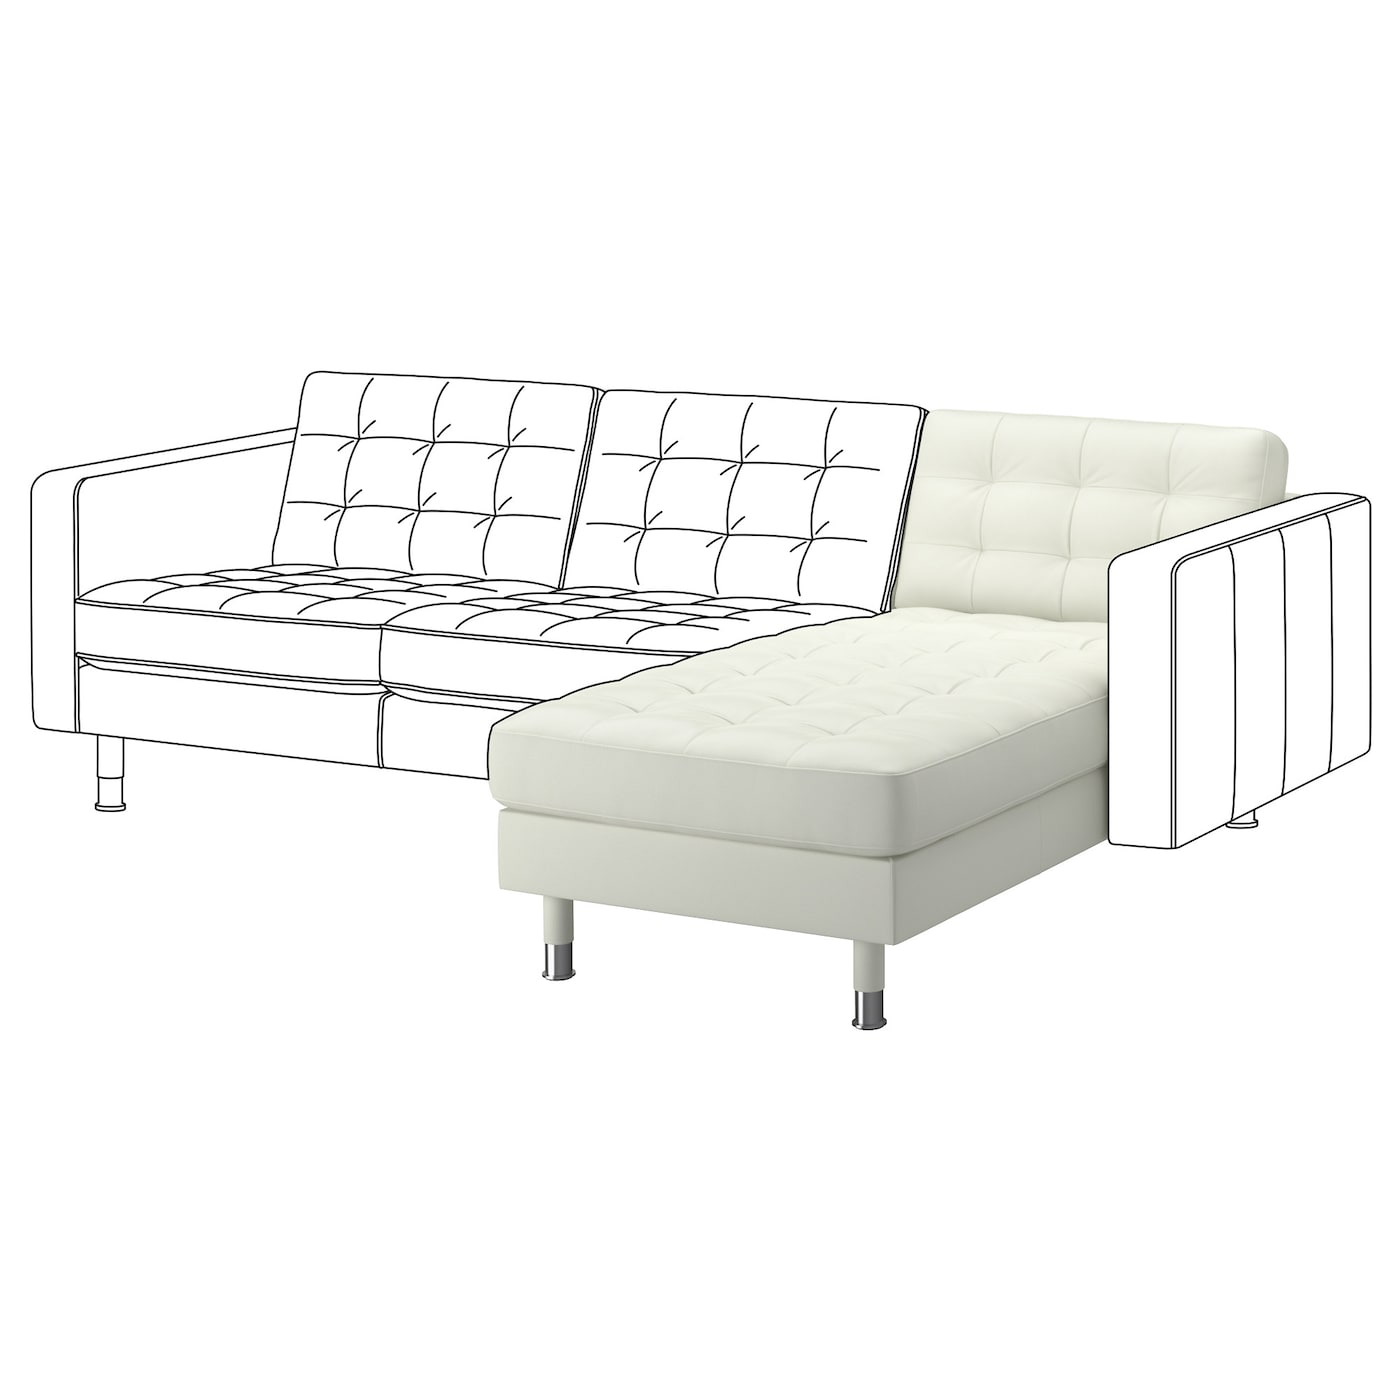 Landskrona chaise longue add on unit grann bomstad white for Chaise longue aluminium pliante